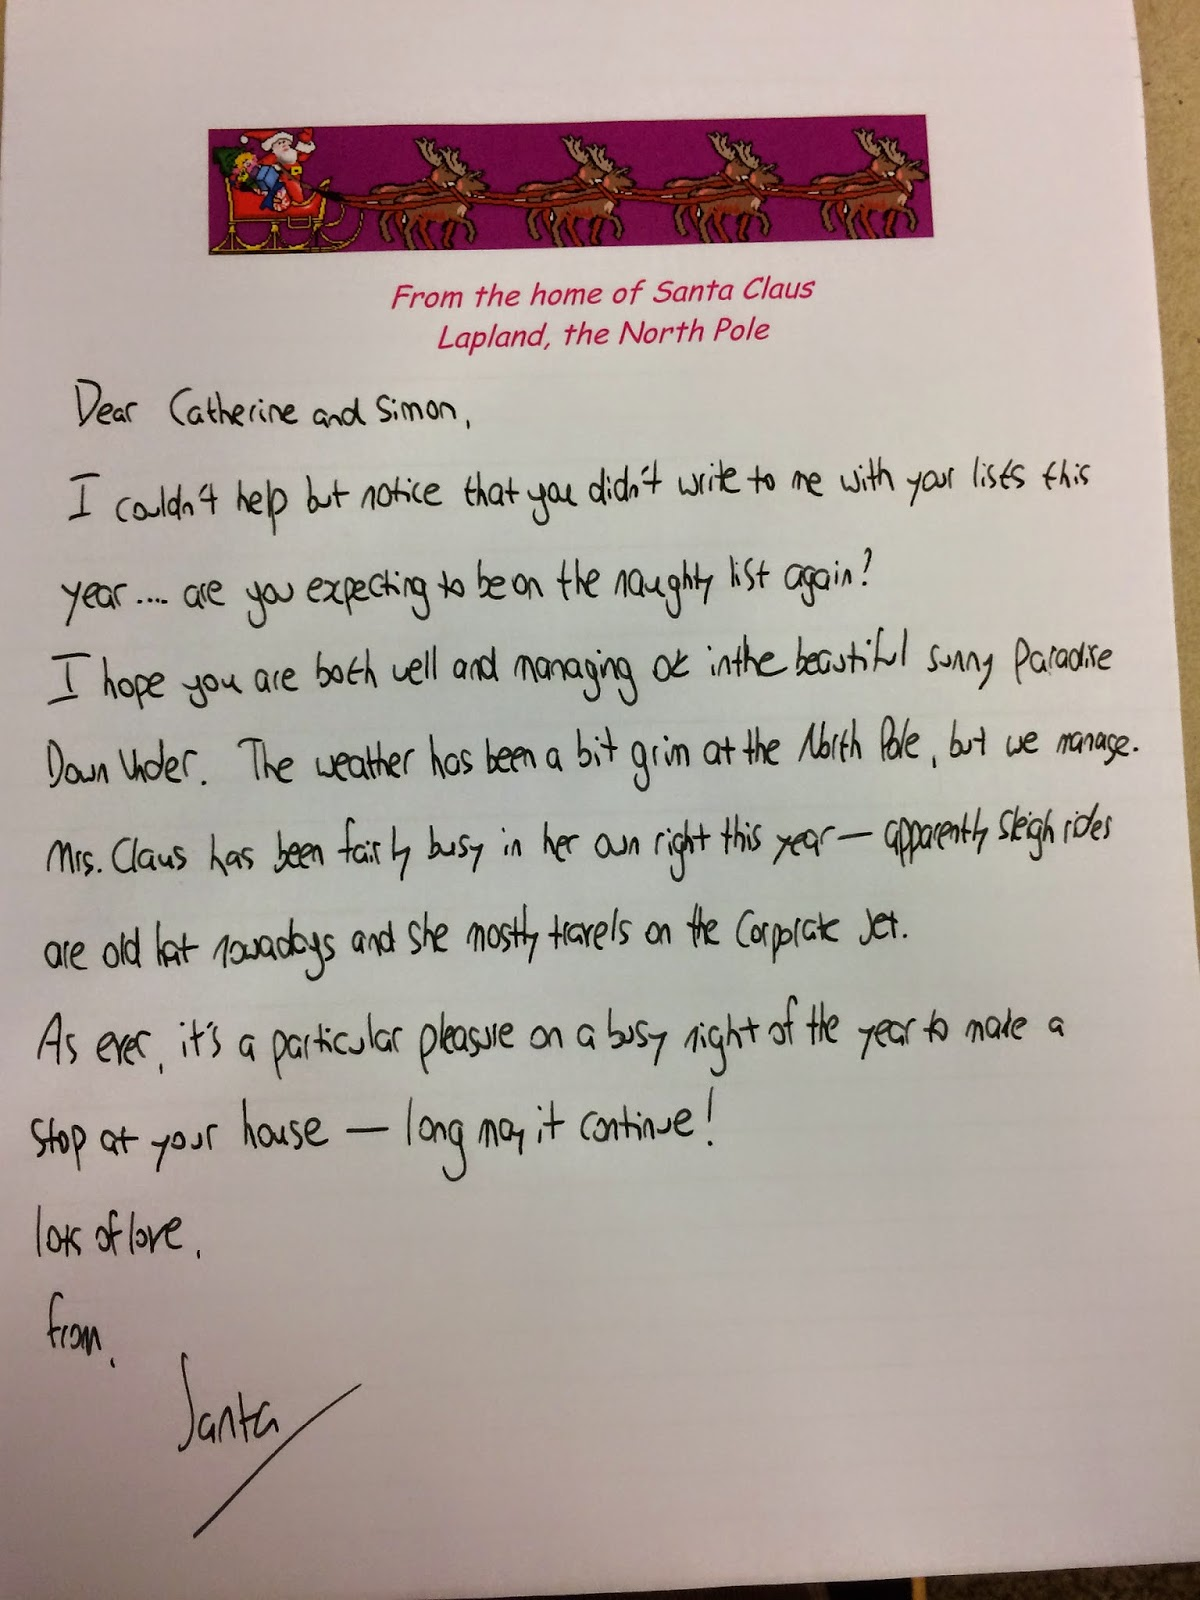 Swisslet naughty or nice mum and dad got a surprise letter from santa too spiritdancerdesigns Image collections